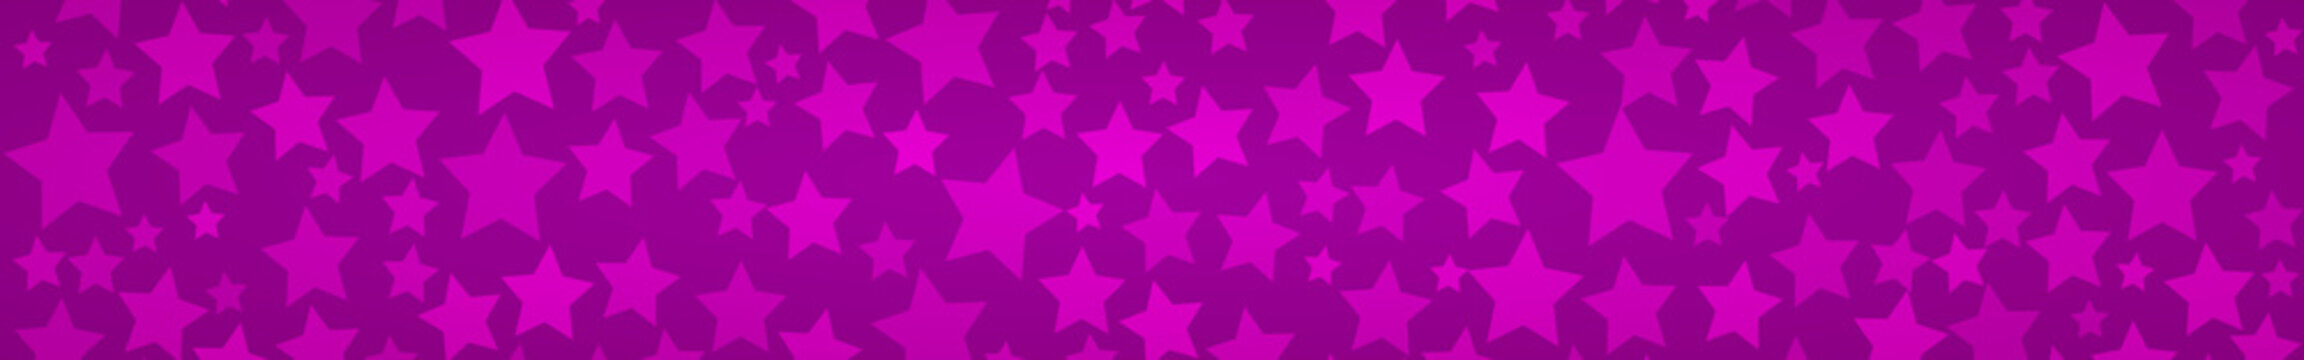 Abstract horizontal banner or background of stars of different sizes in purple colors